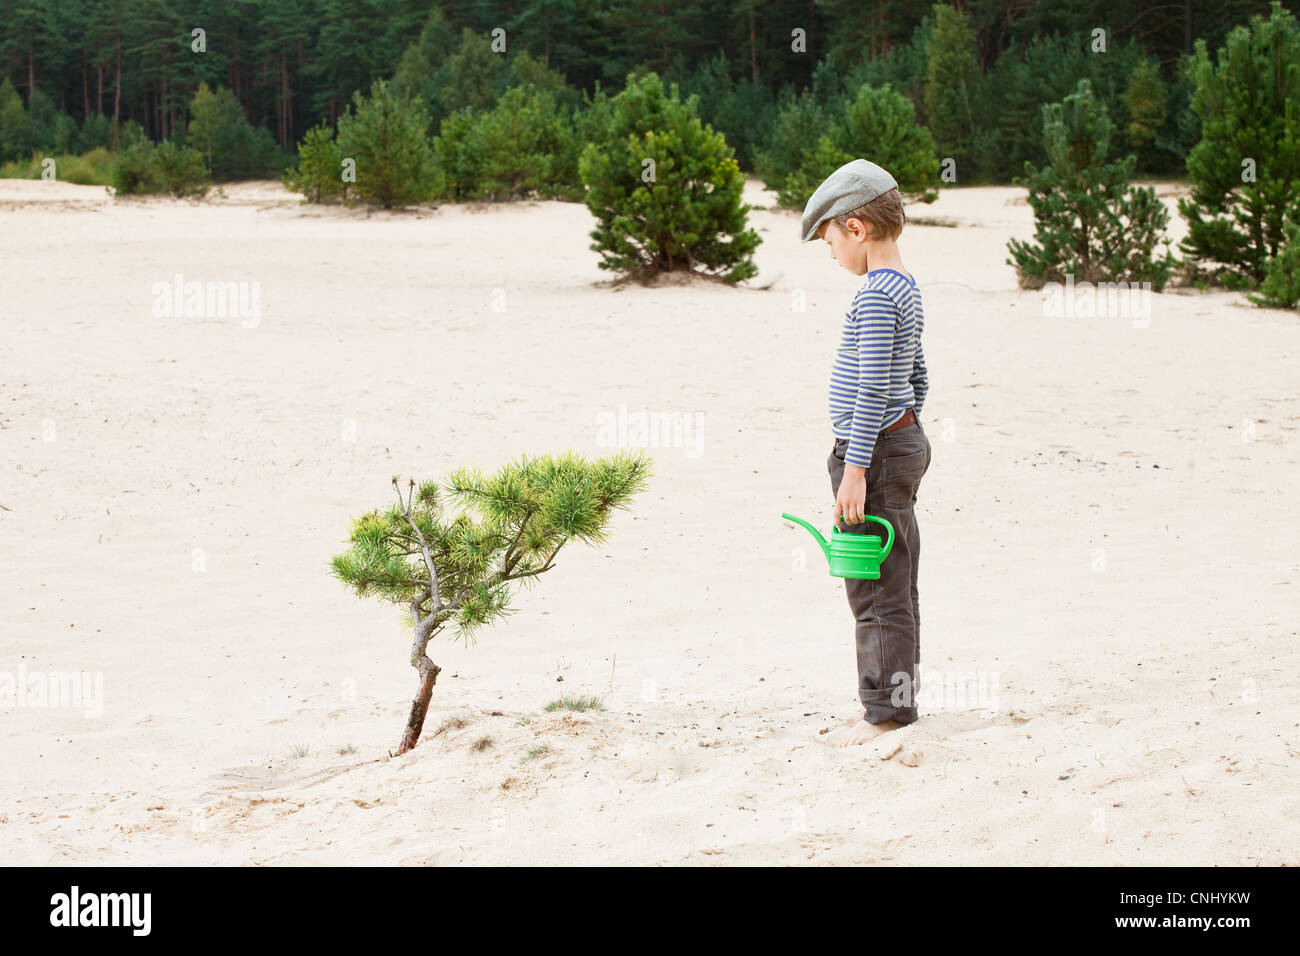 Boy with watering can, looking at plant in sand - Stock Image